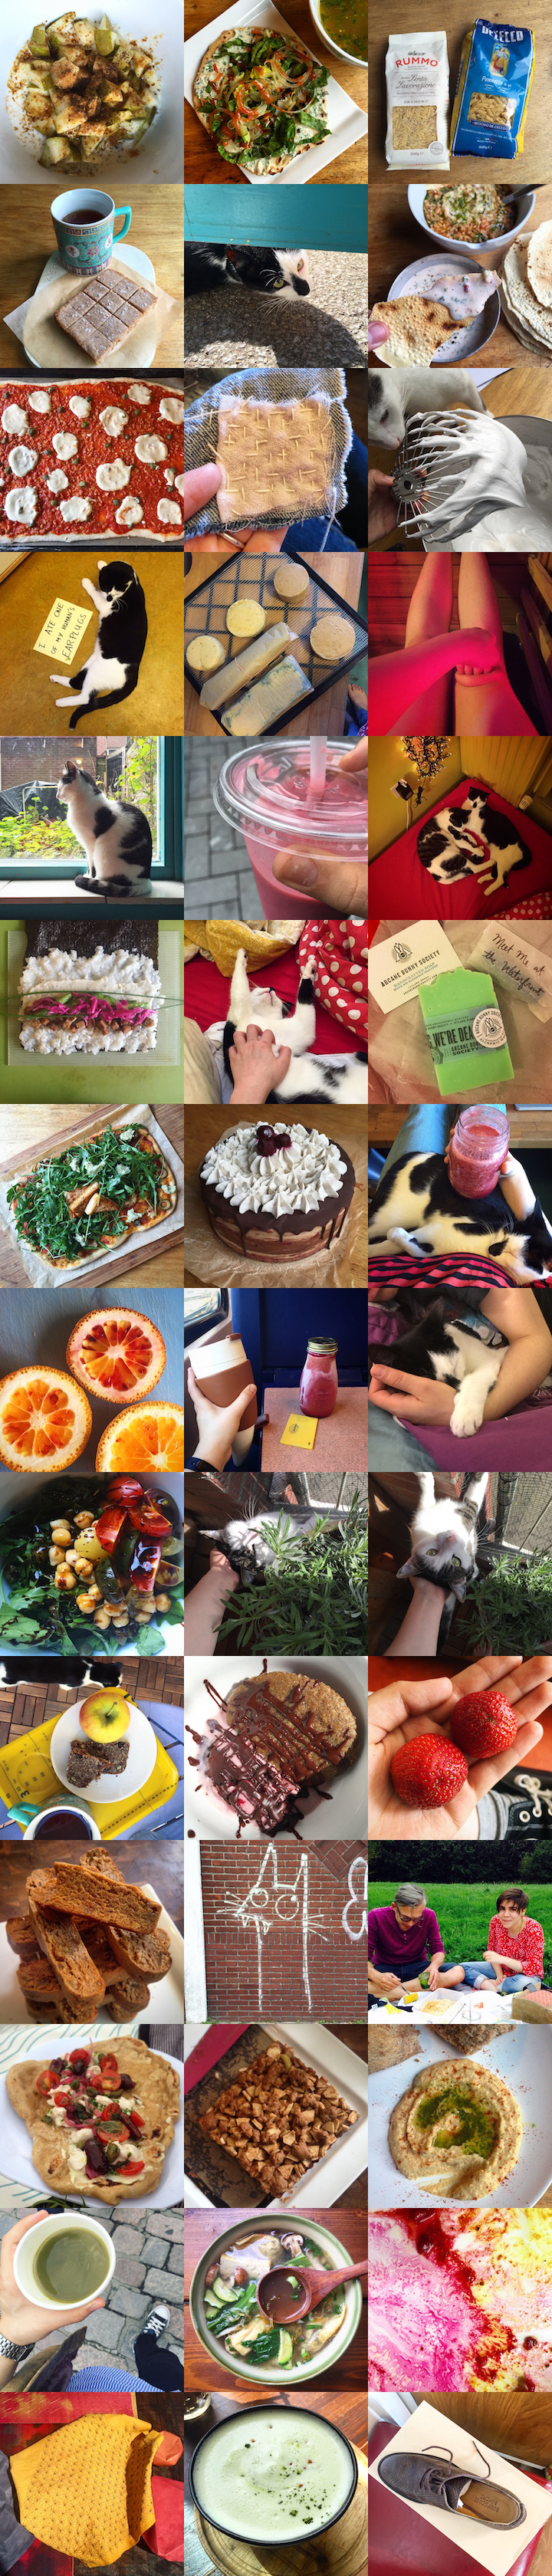 3 by 14 grid featuring 42 instagram pictures mostly showing cats or food.